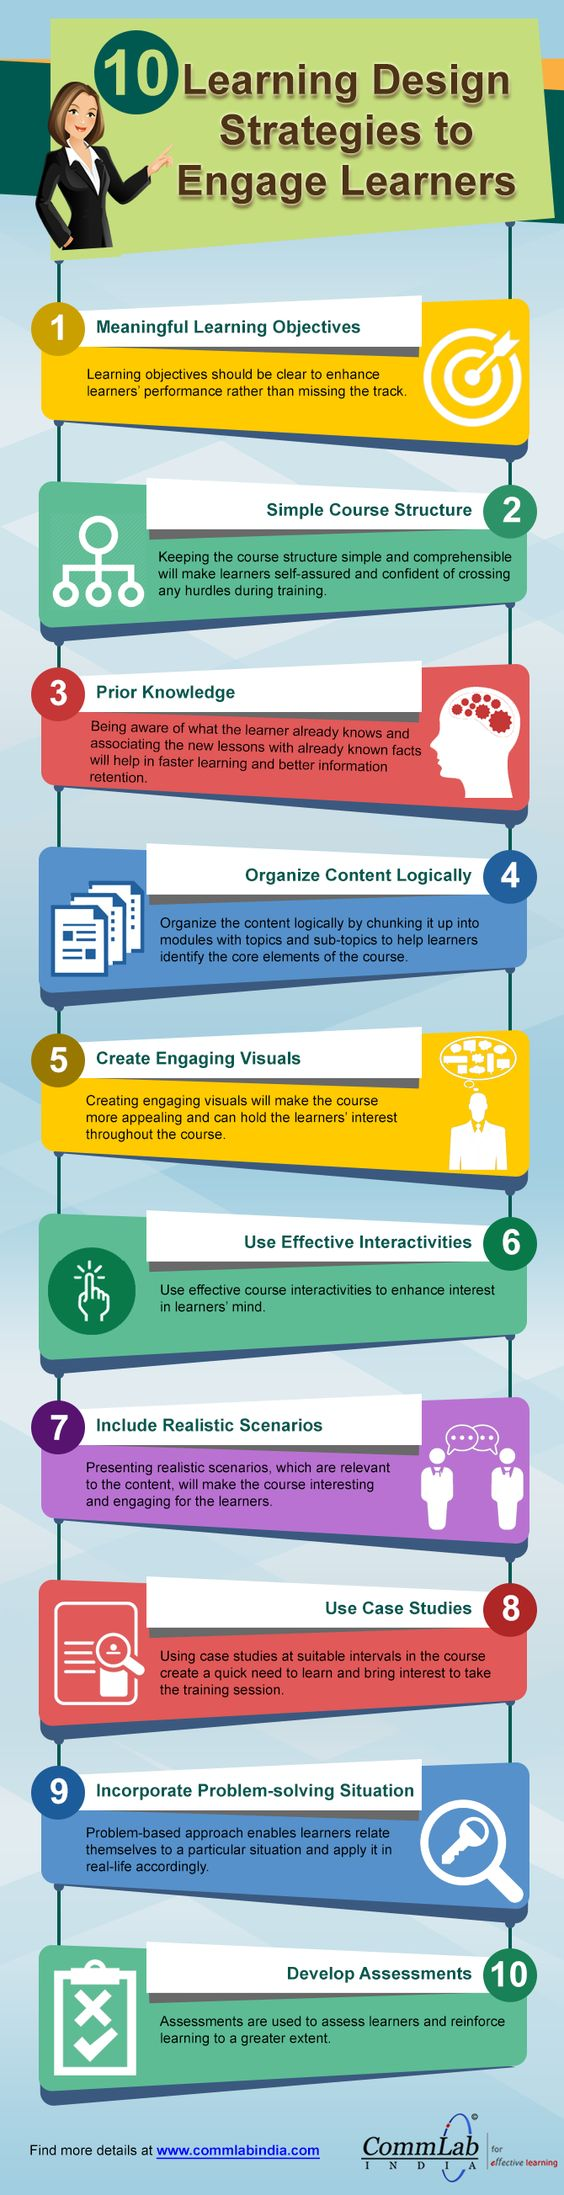 Infographic Learning Design to Engage Learners